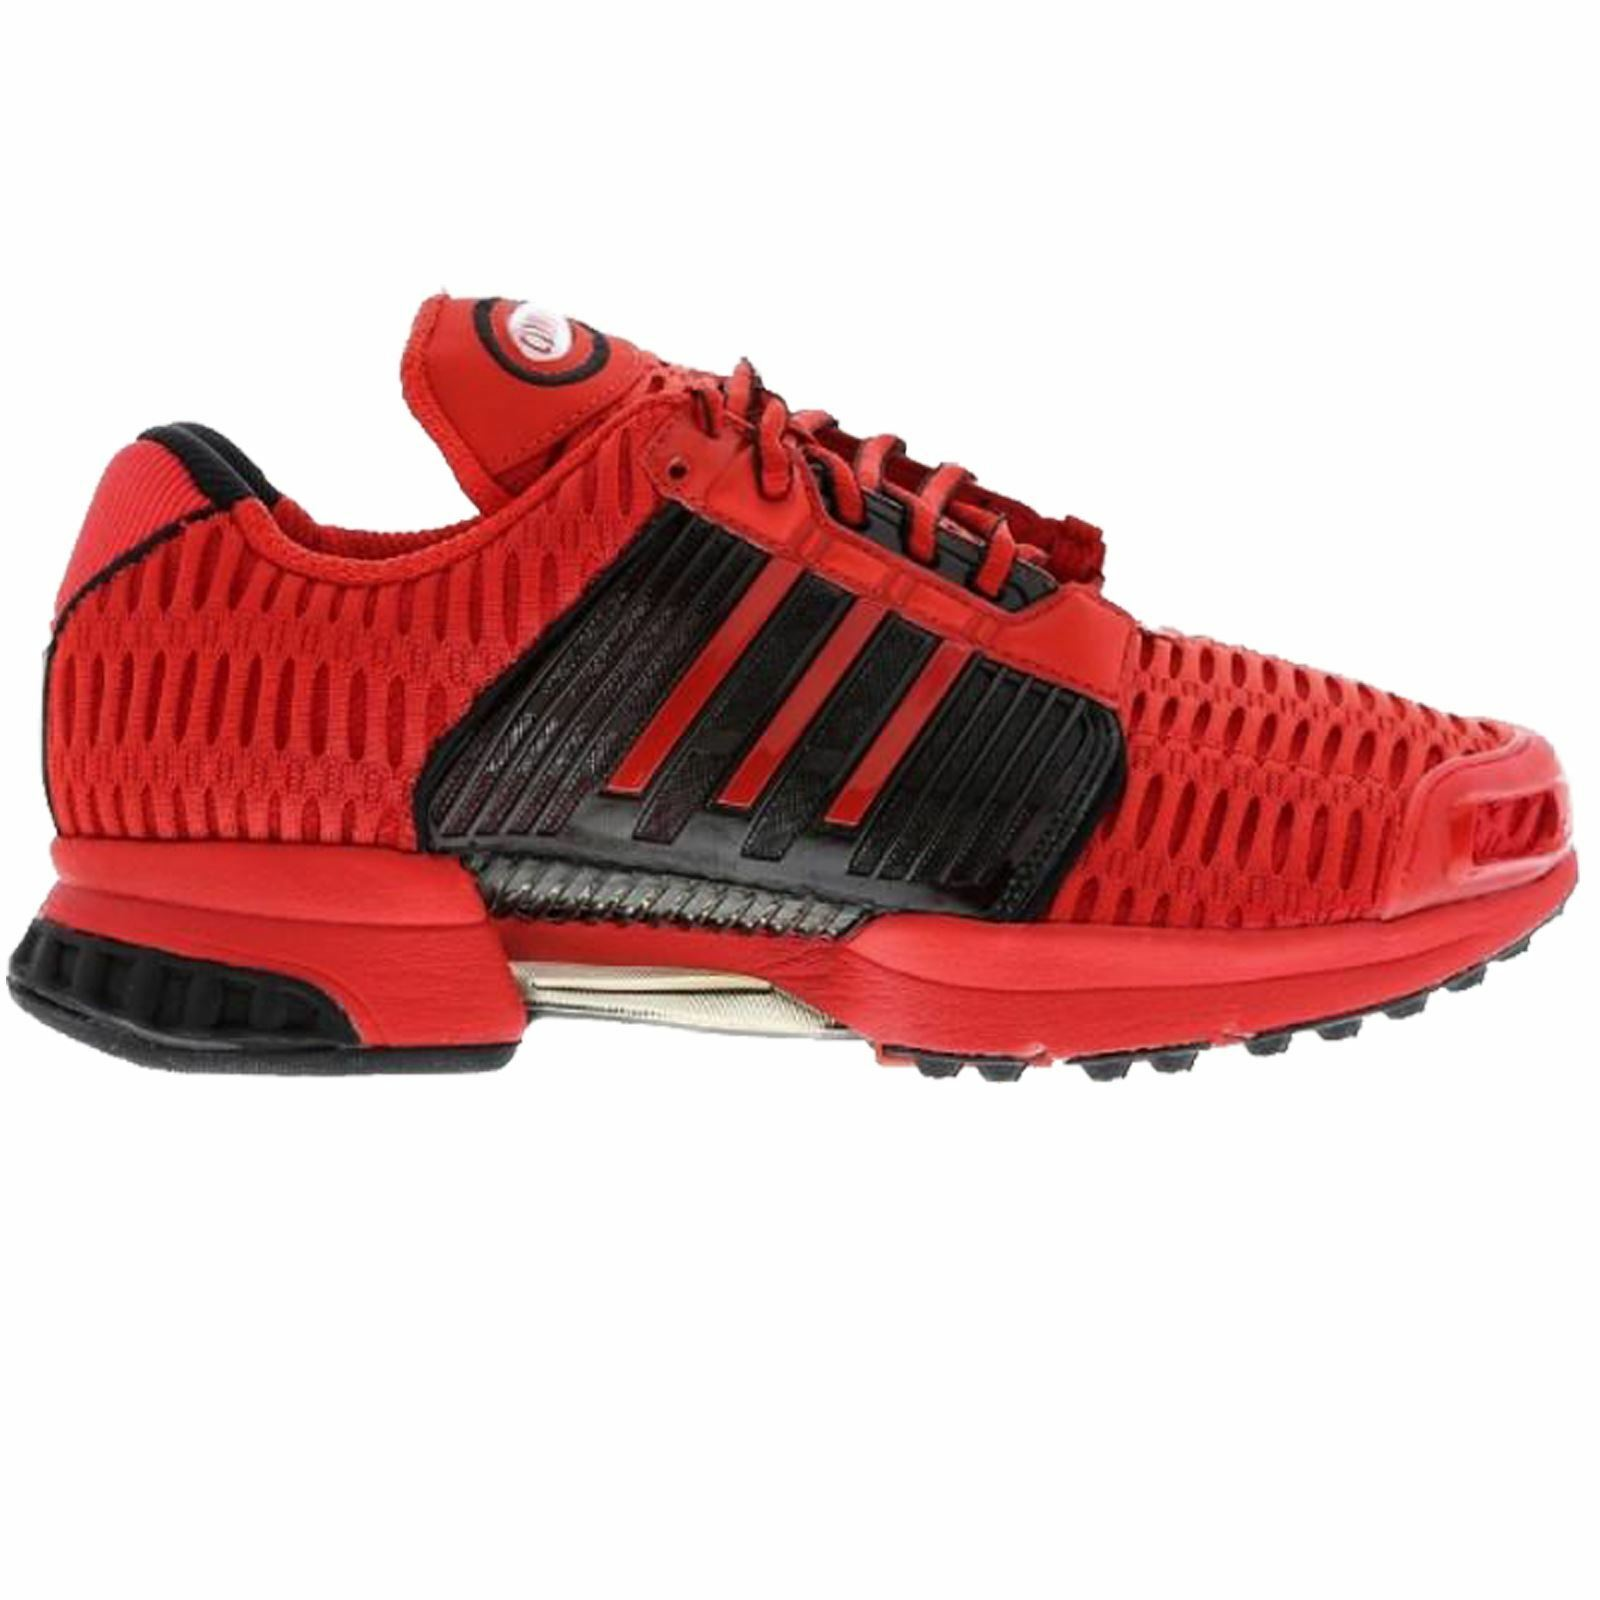 Adidas Climacool  1 BB0540 Mens TrainersOriginalsto 9.5 ONLY  timeless classic